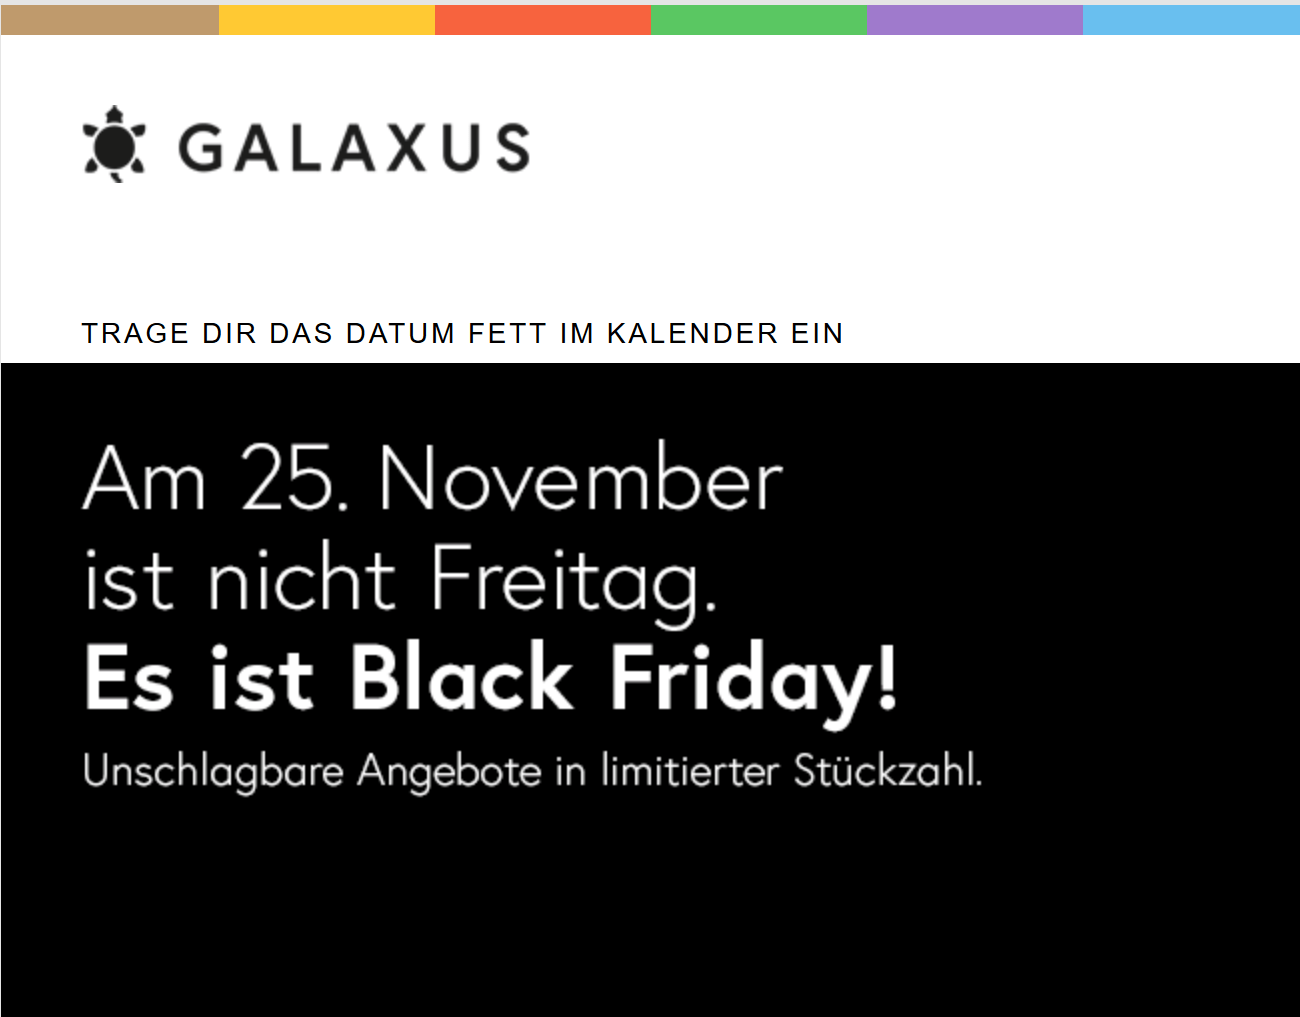 Wann Ist Black Friday Live Shopping Deals Bei Galaxus Black Friday Schweiz 2018